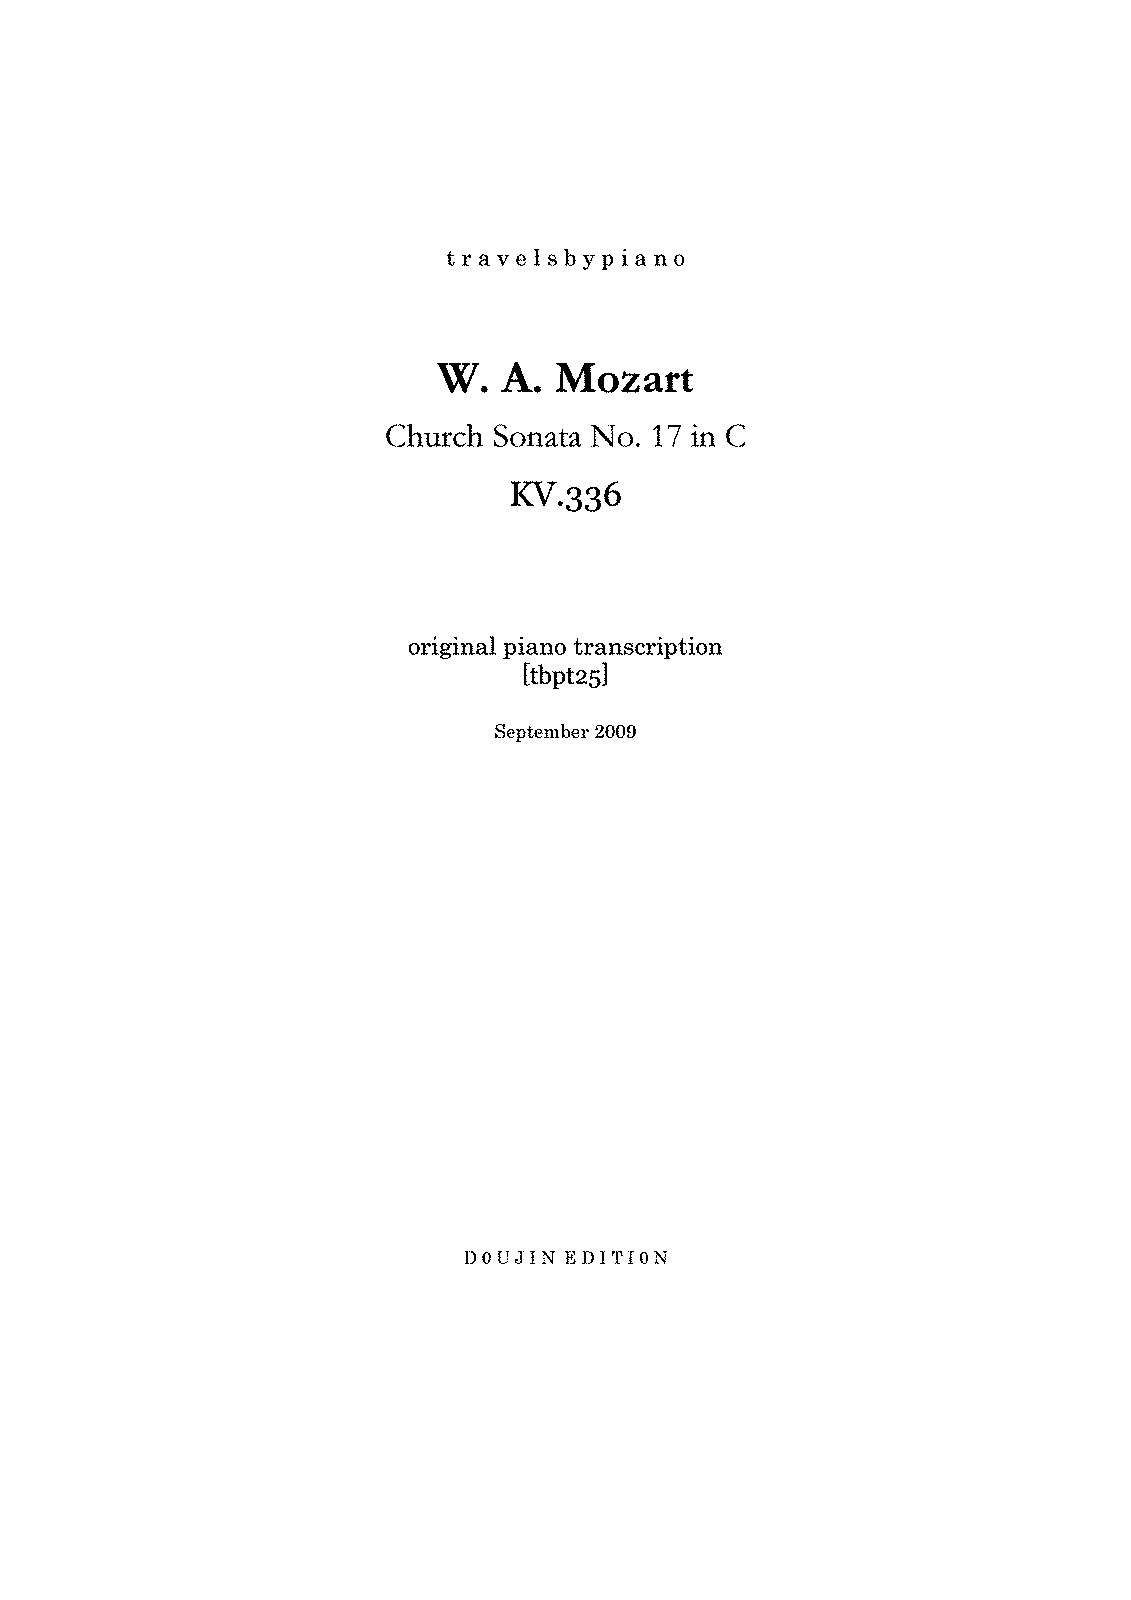 PMLP106163--travelsbypiano- tbpt25 W.A.Mozart Church Sonata No.17 in C KV.336 piano transcription -B846205E-.pdf